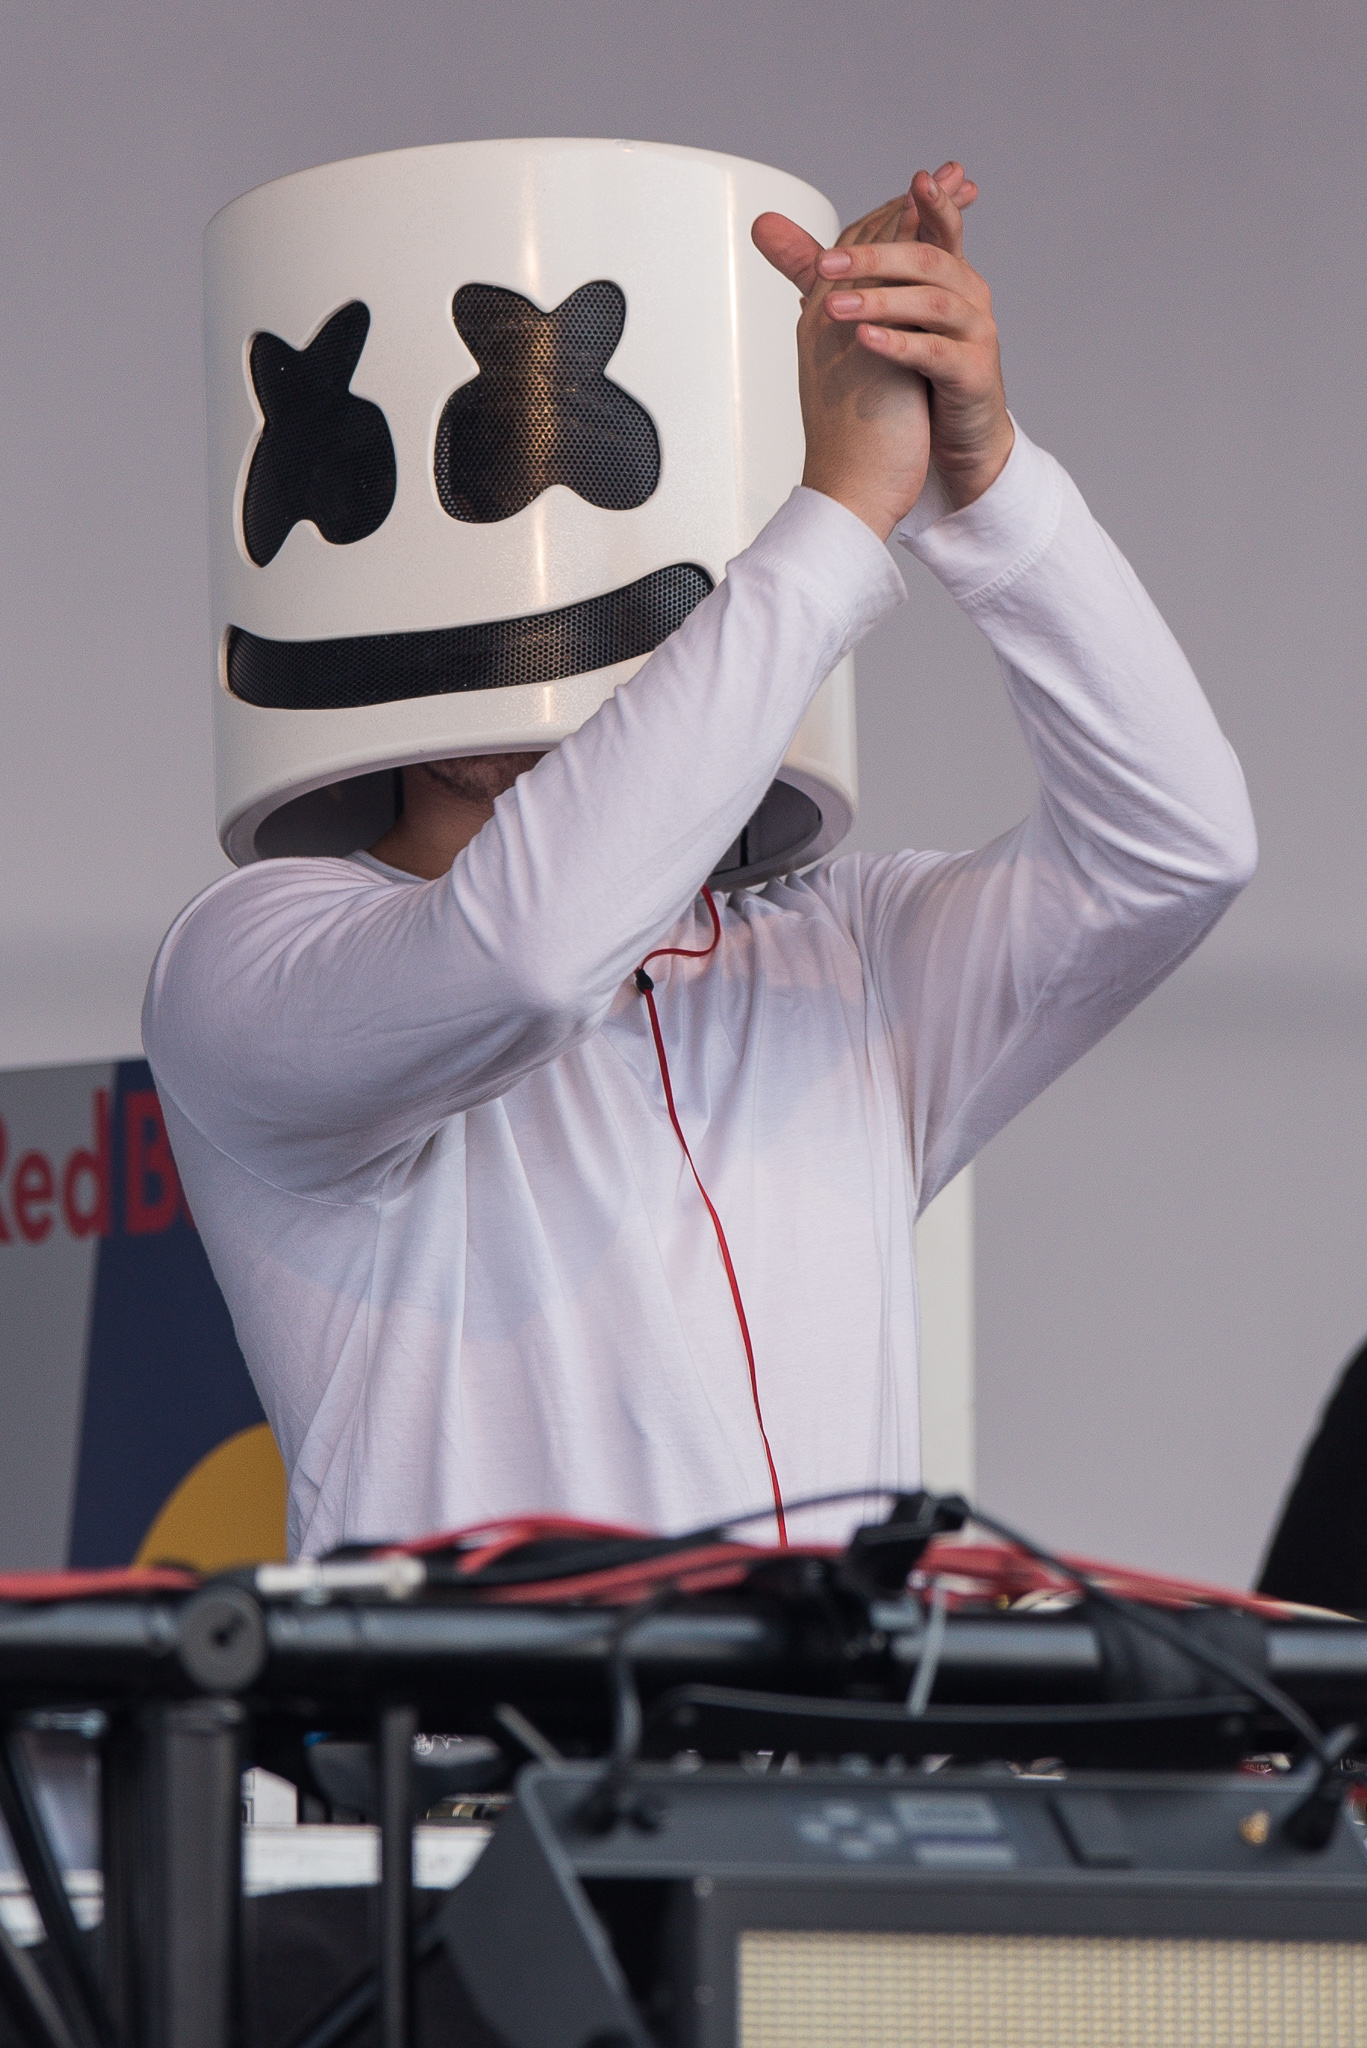 File:2016 Open Beatz - Marshmello - by 2eight -DSC 4442.jpg